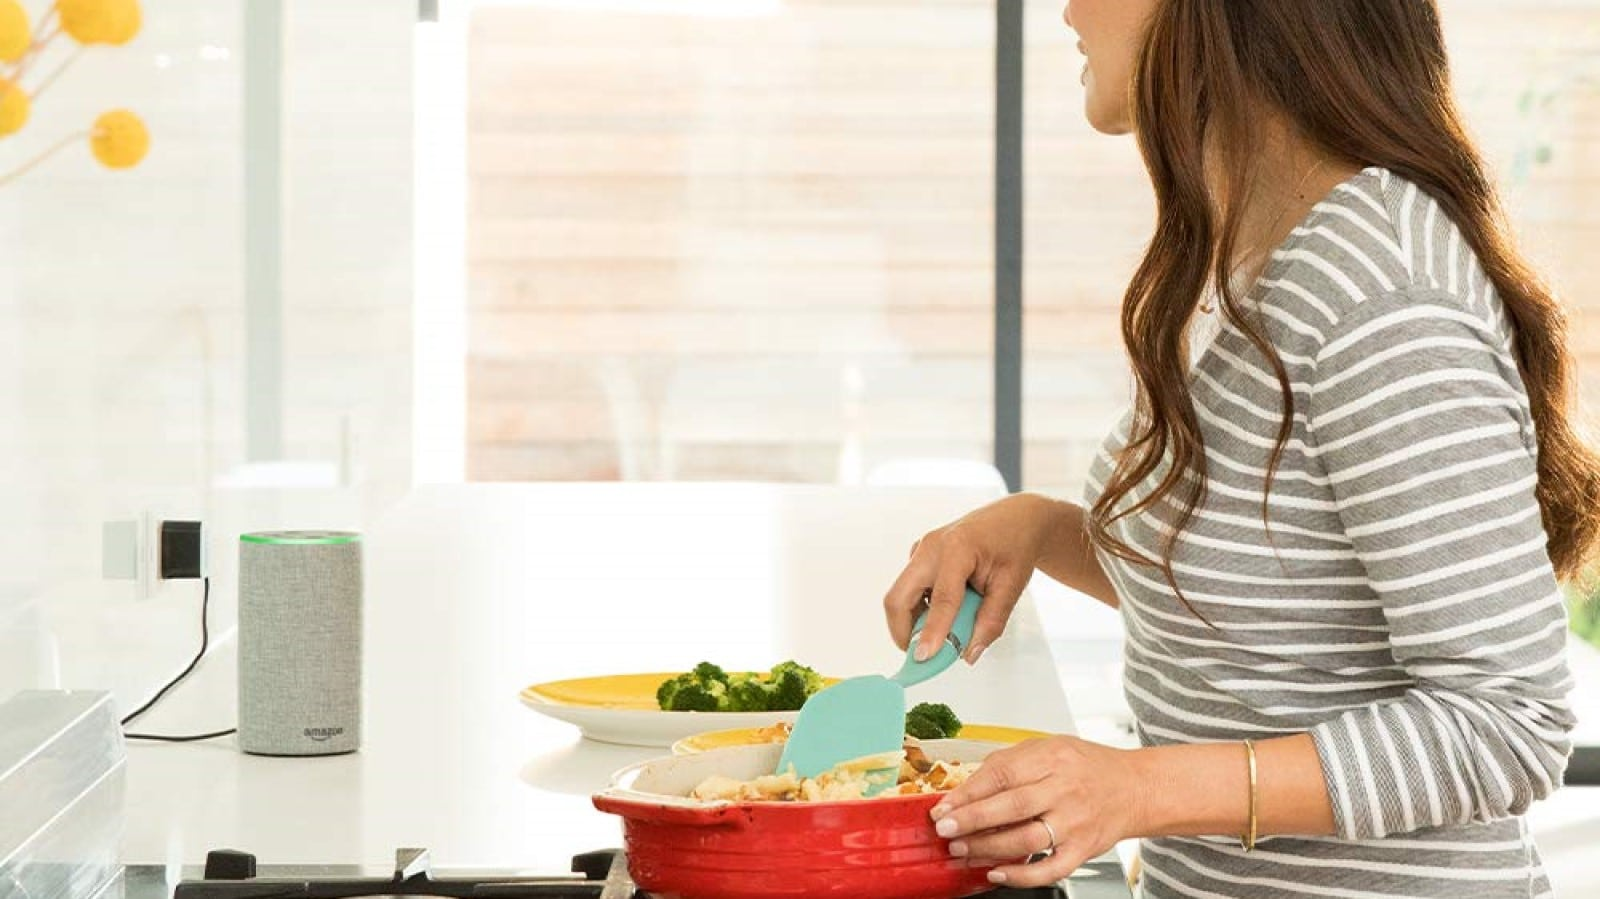 amazon echo smart speaker on kitchen counter while woman cooks a meal on stove